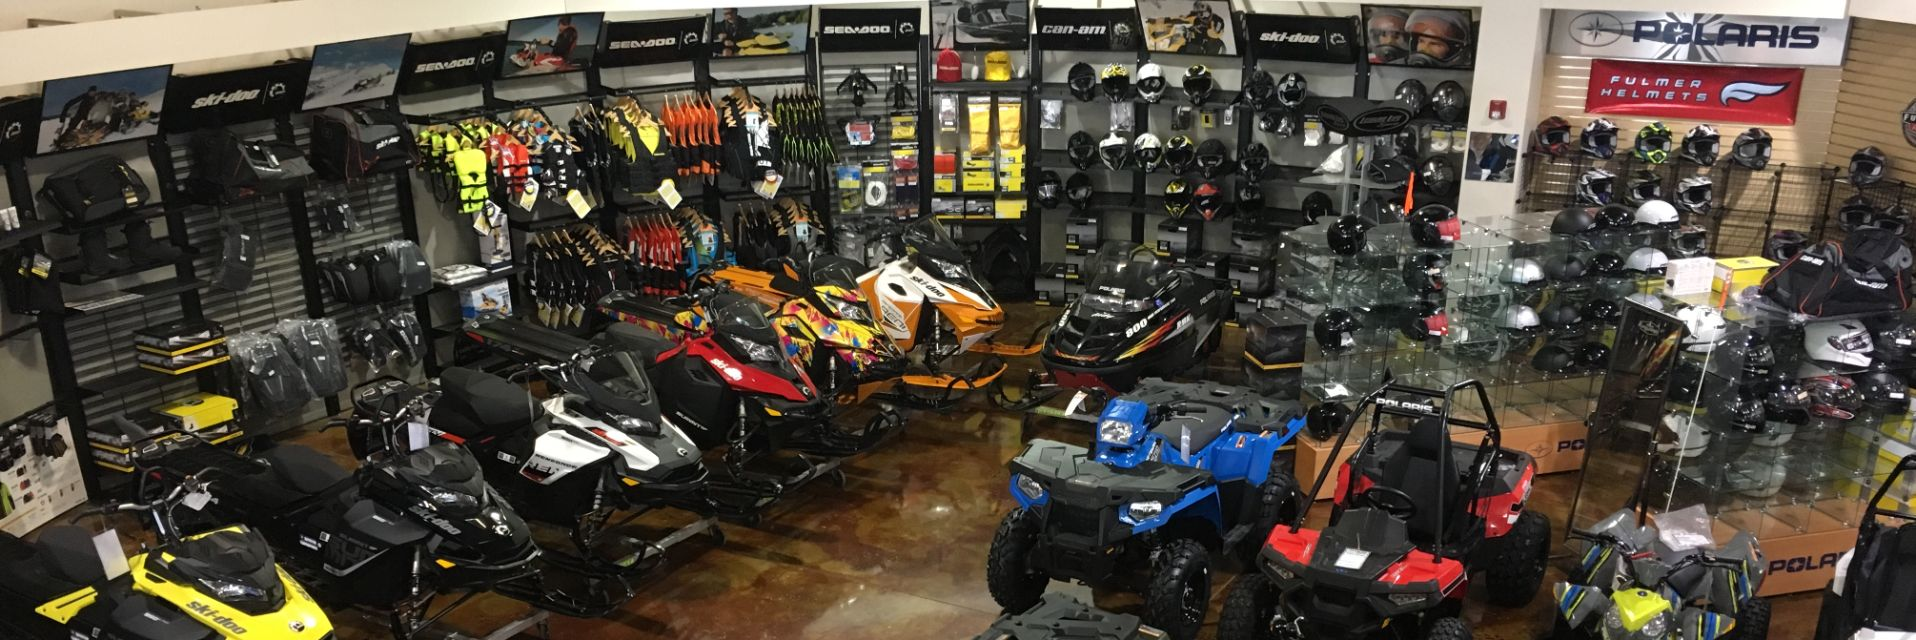 Leisure Life Sports | | New and Used Motorcycles, ATVs, UTVs